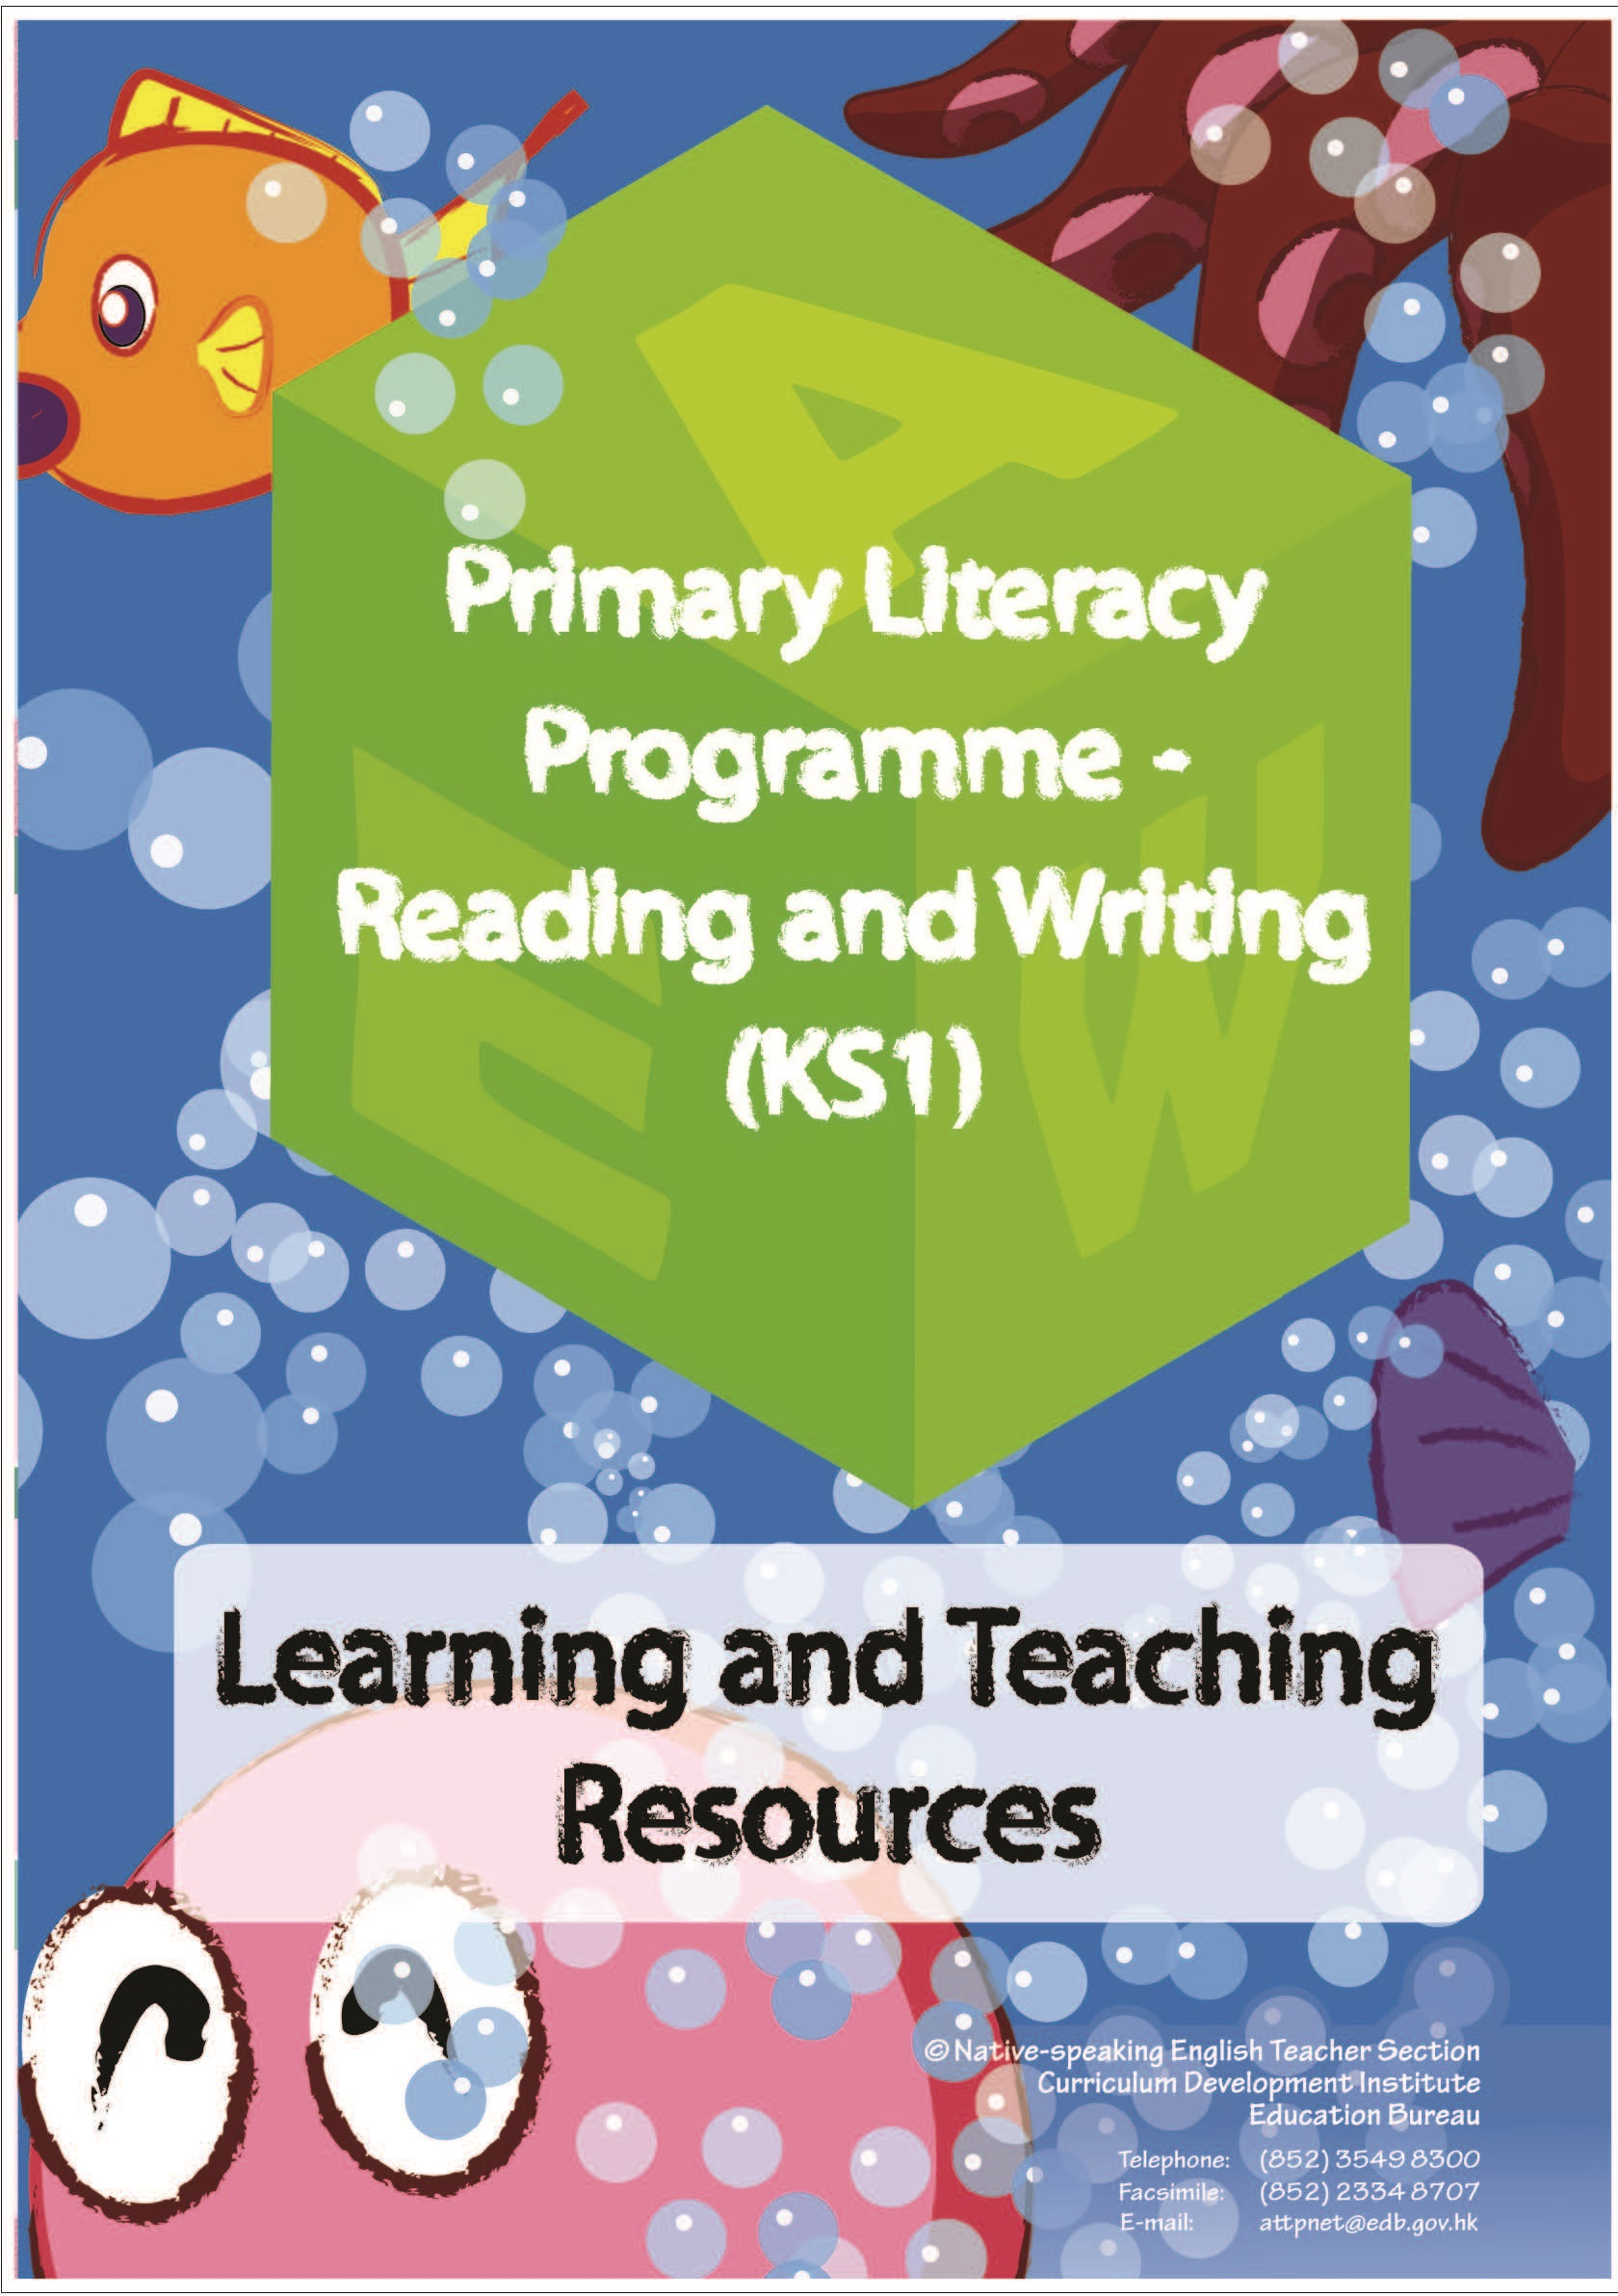 PLP-R/W (KS1) Learning and Teaching Resources leaflet [PDF]